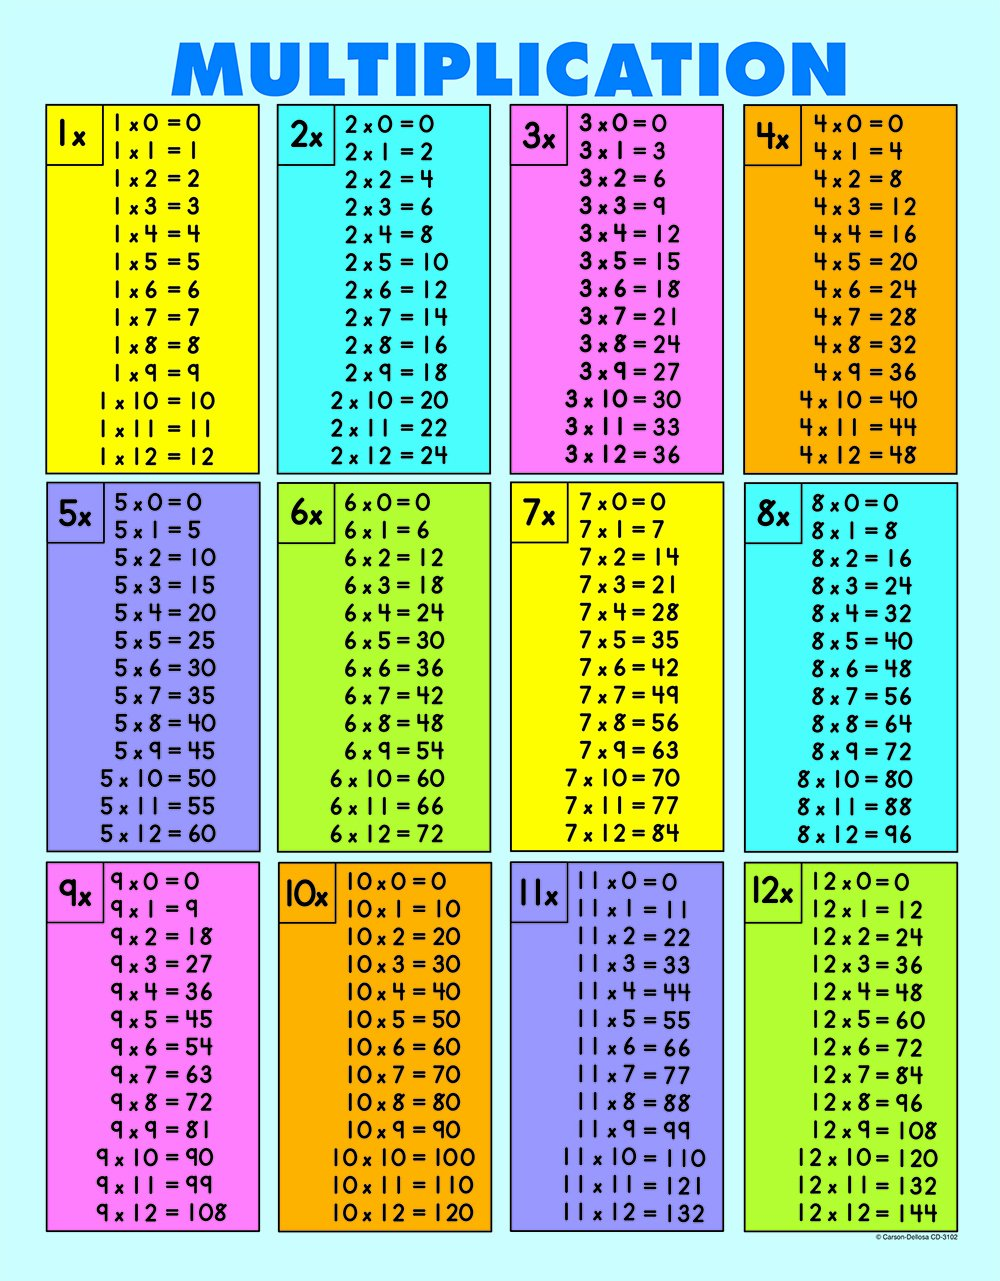 Multiplication facts through 12 popflyboys for Table multiplication 3